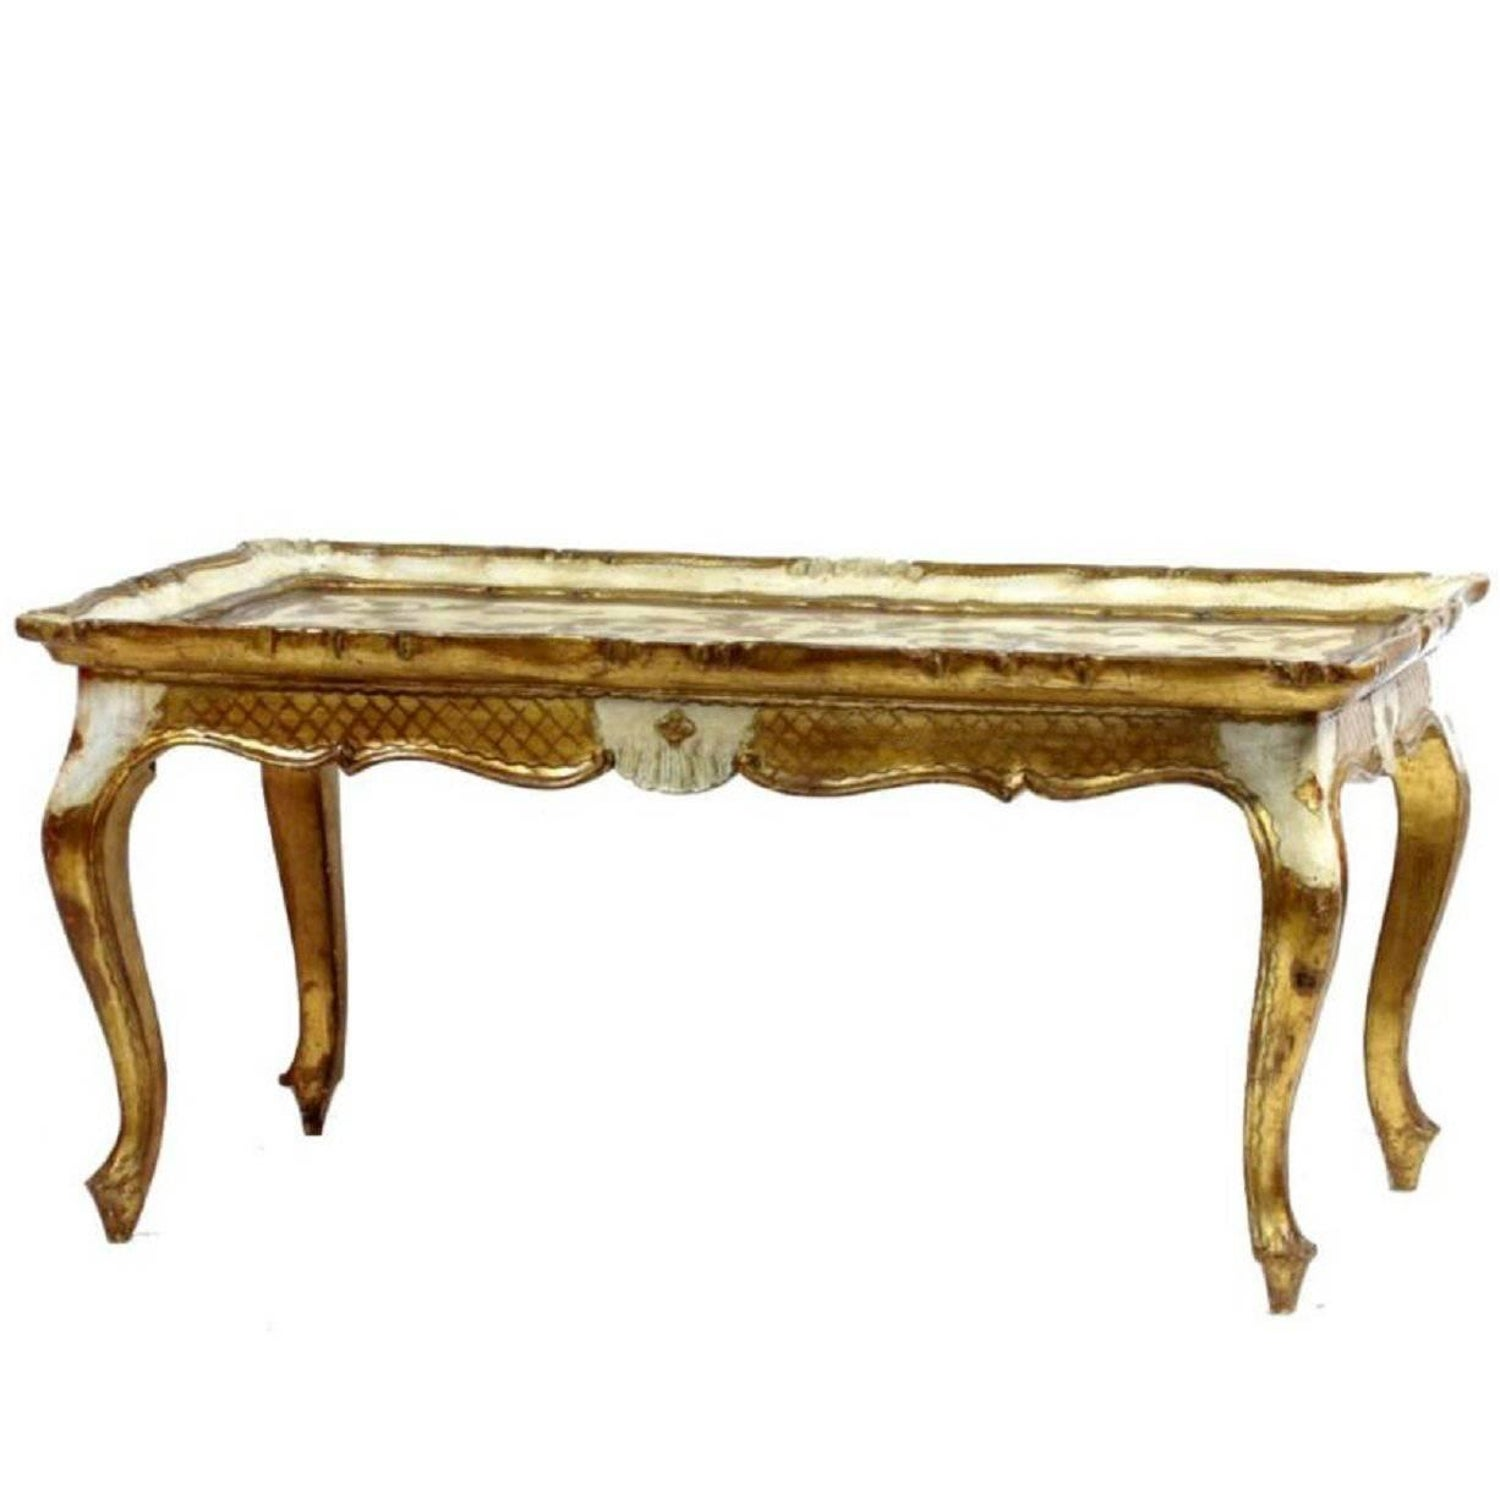 Rococo Tables 249 For Sale at 1stdibs